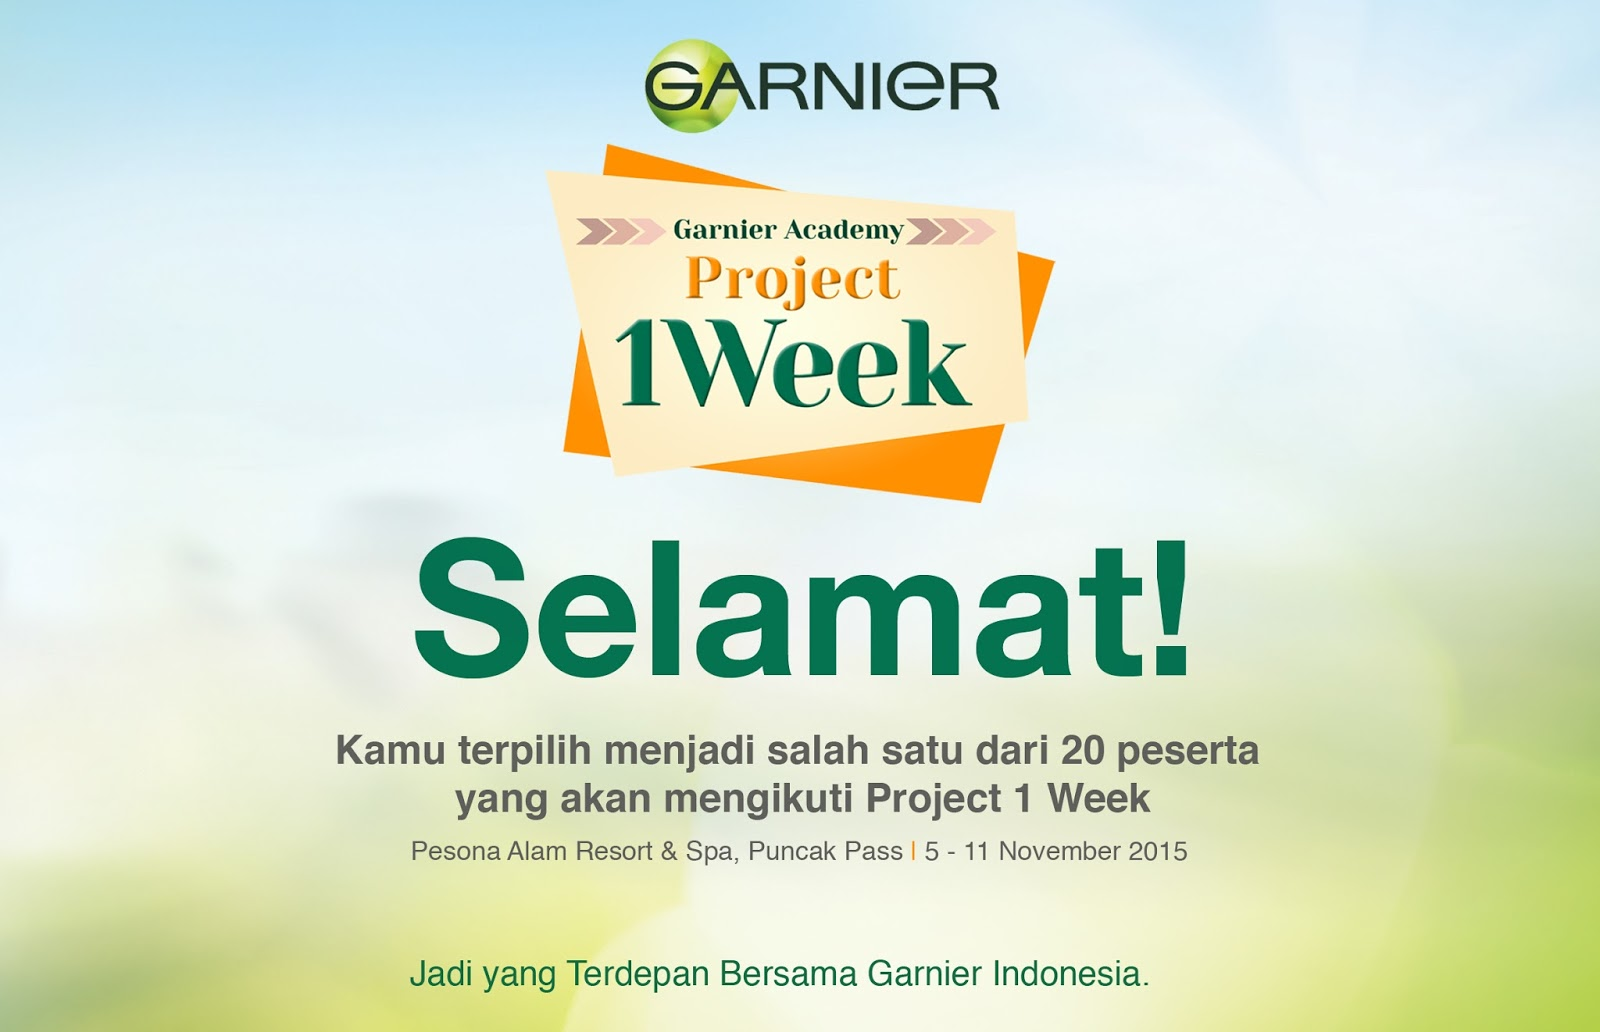 Alumni Garnier Academy Project 1 Week